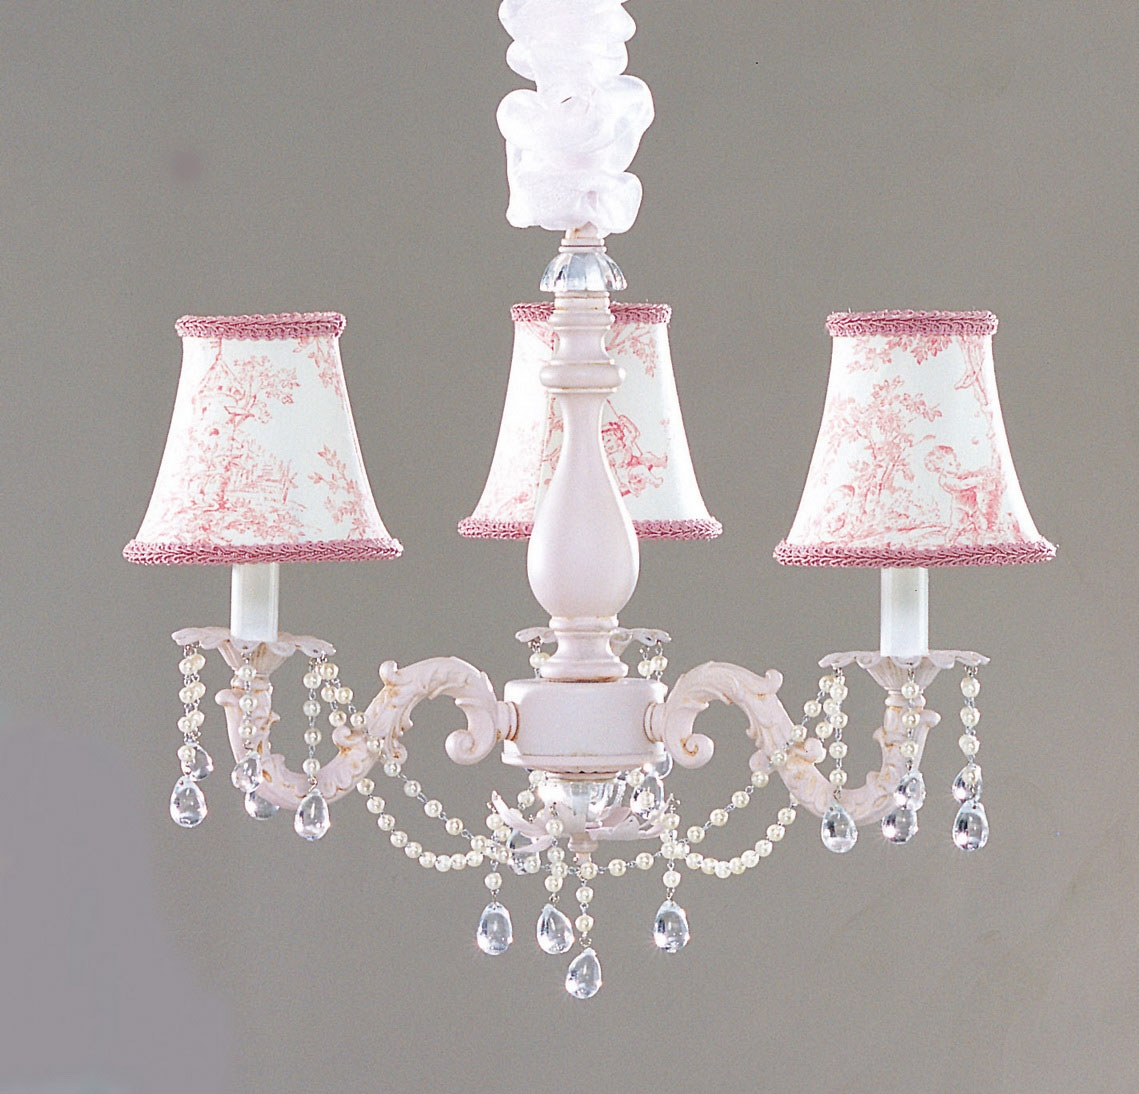 Furniture Hot Chandelier For Ba Nursery Room With Small Blue Inside Crystal Chandeliers For Baby Girl Room (Image 19 of 25)